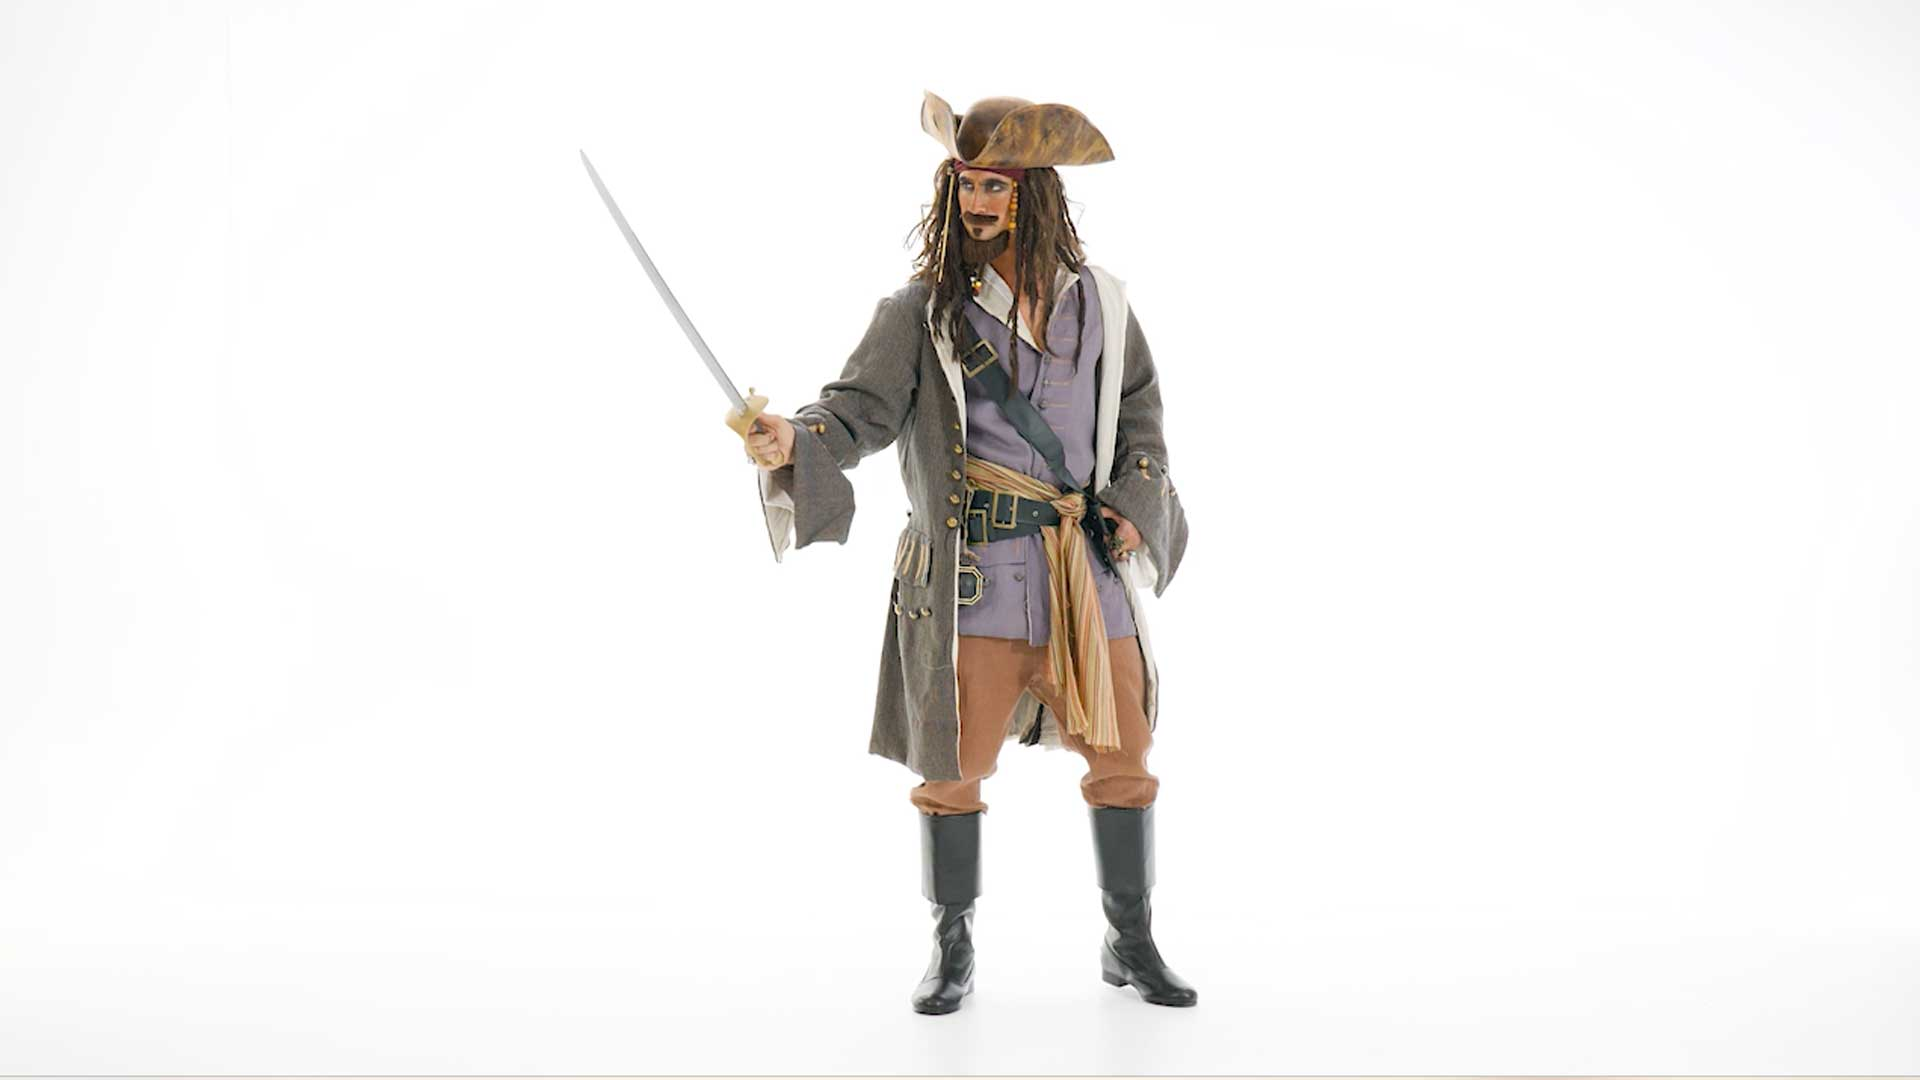 Realistic Caribbean Men's Pirate Costume - Mens Pirate Costumes Adults